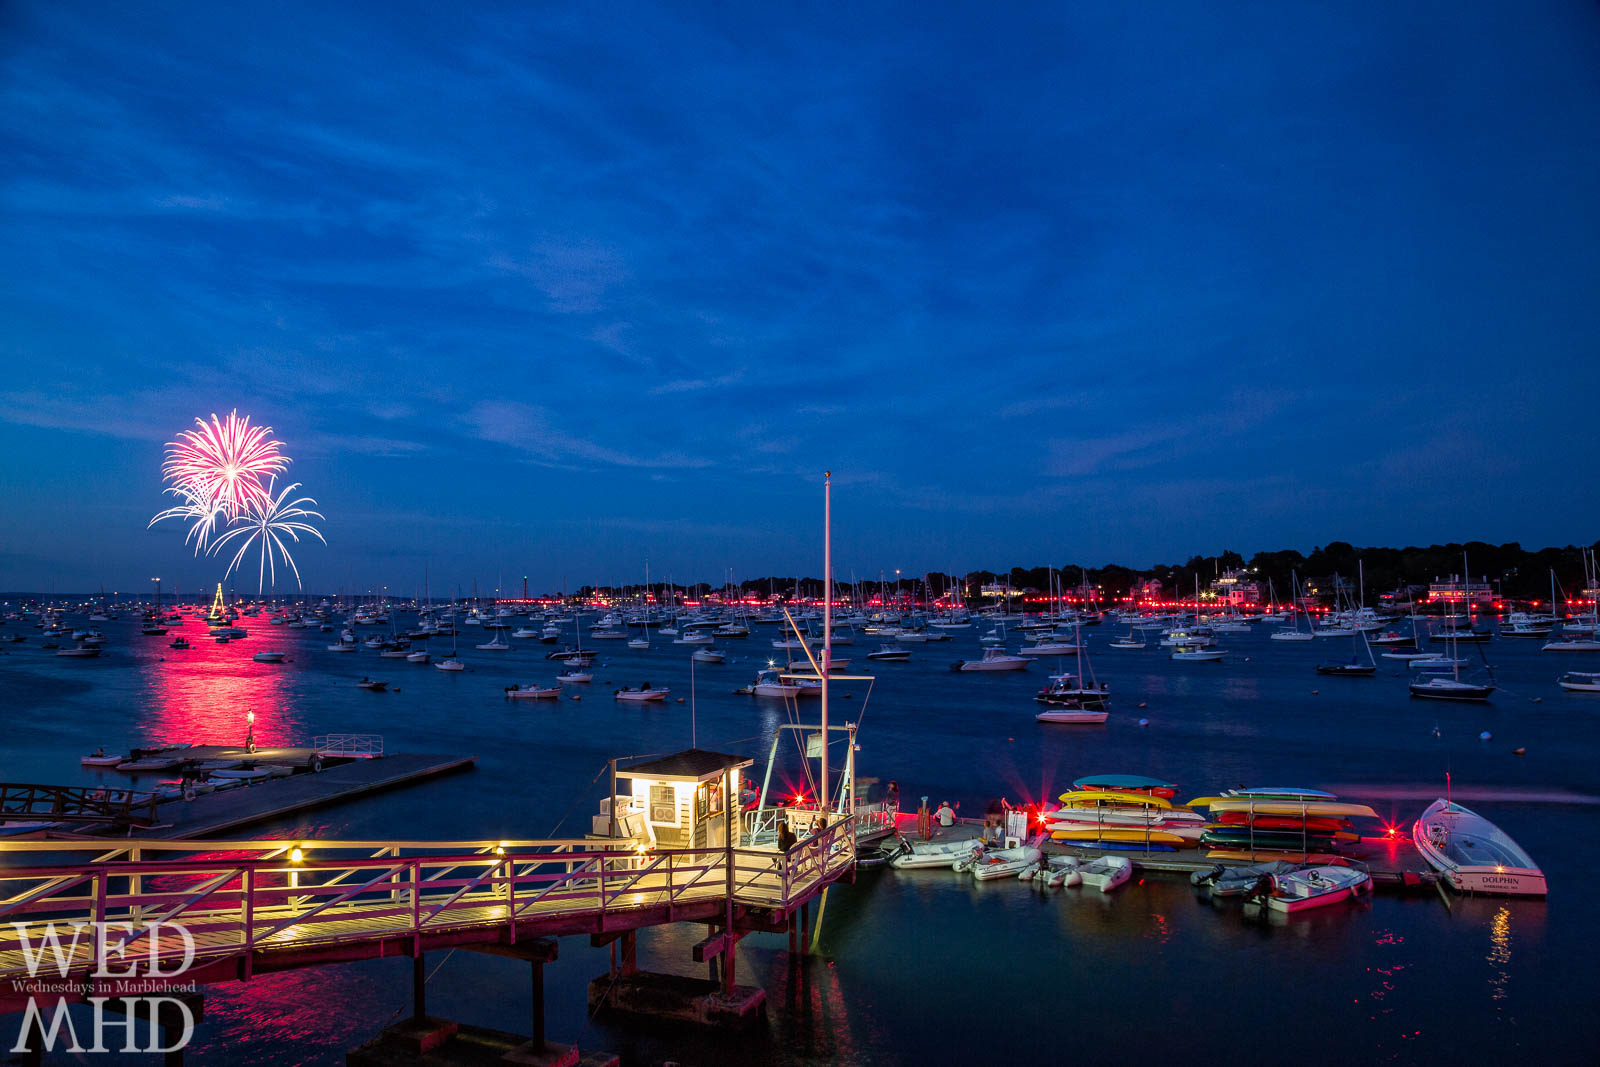 An explosion of reds and blues captures the incredible display of the Marblehead fireworks and harbor illumination